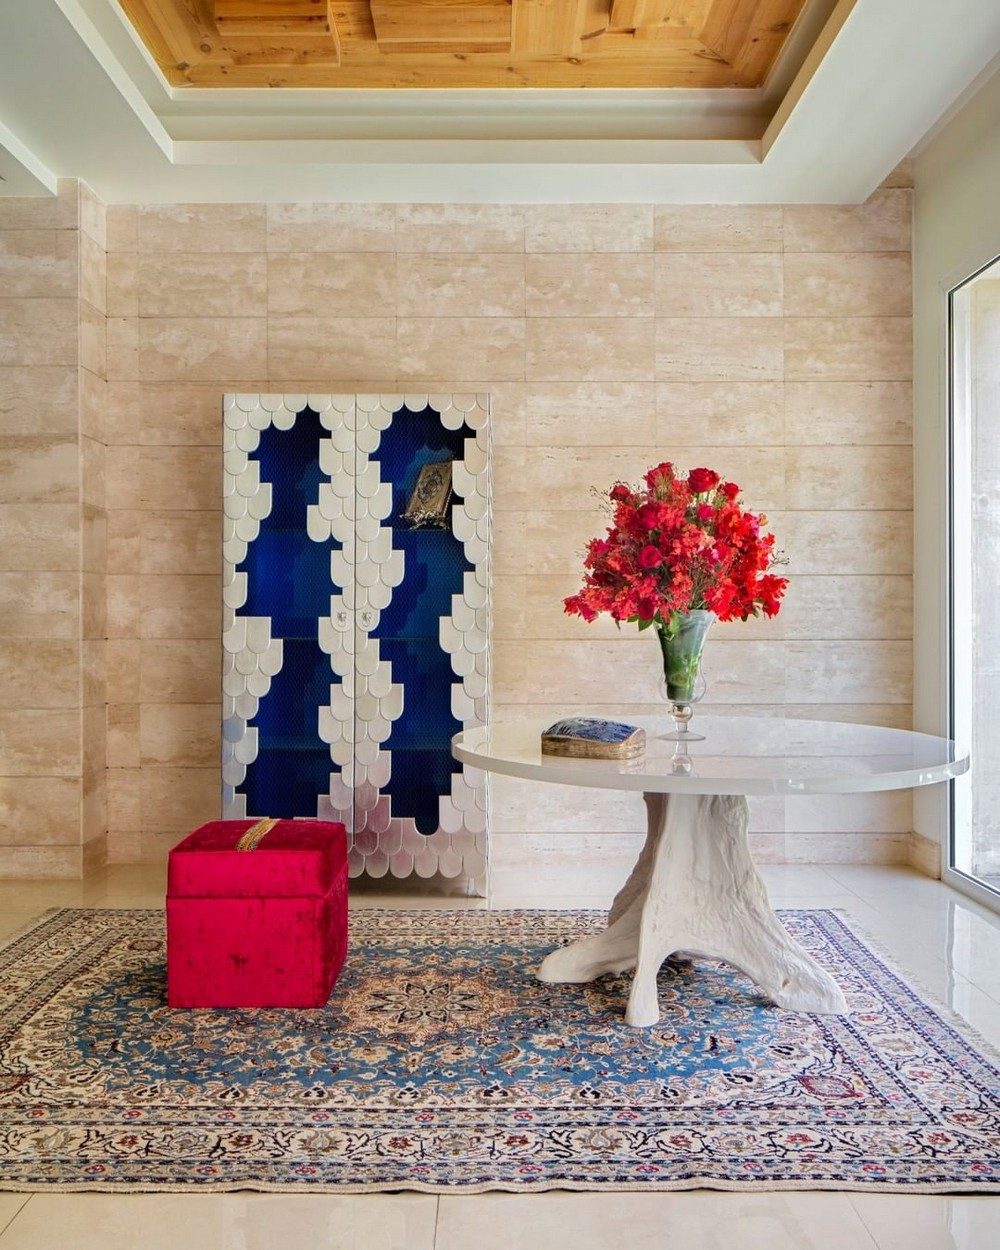 Elevate Your Dining Room With These Colorful Luxury Furniture dining room Elevate Your Dining Room With These Colorful Luxury Furniture elevate your dining room with these colorful luxury furniture 1